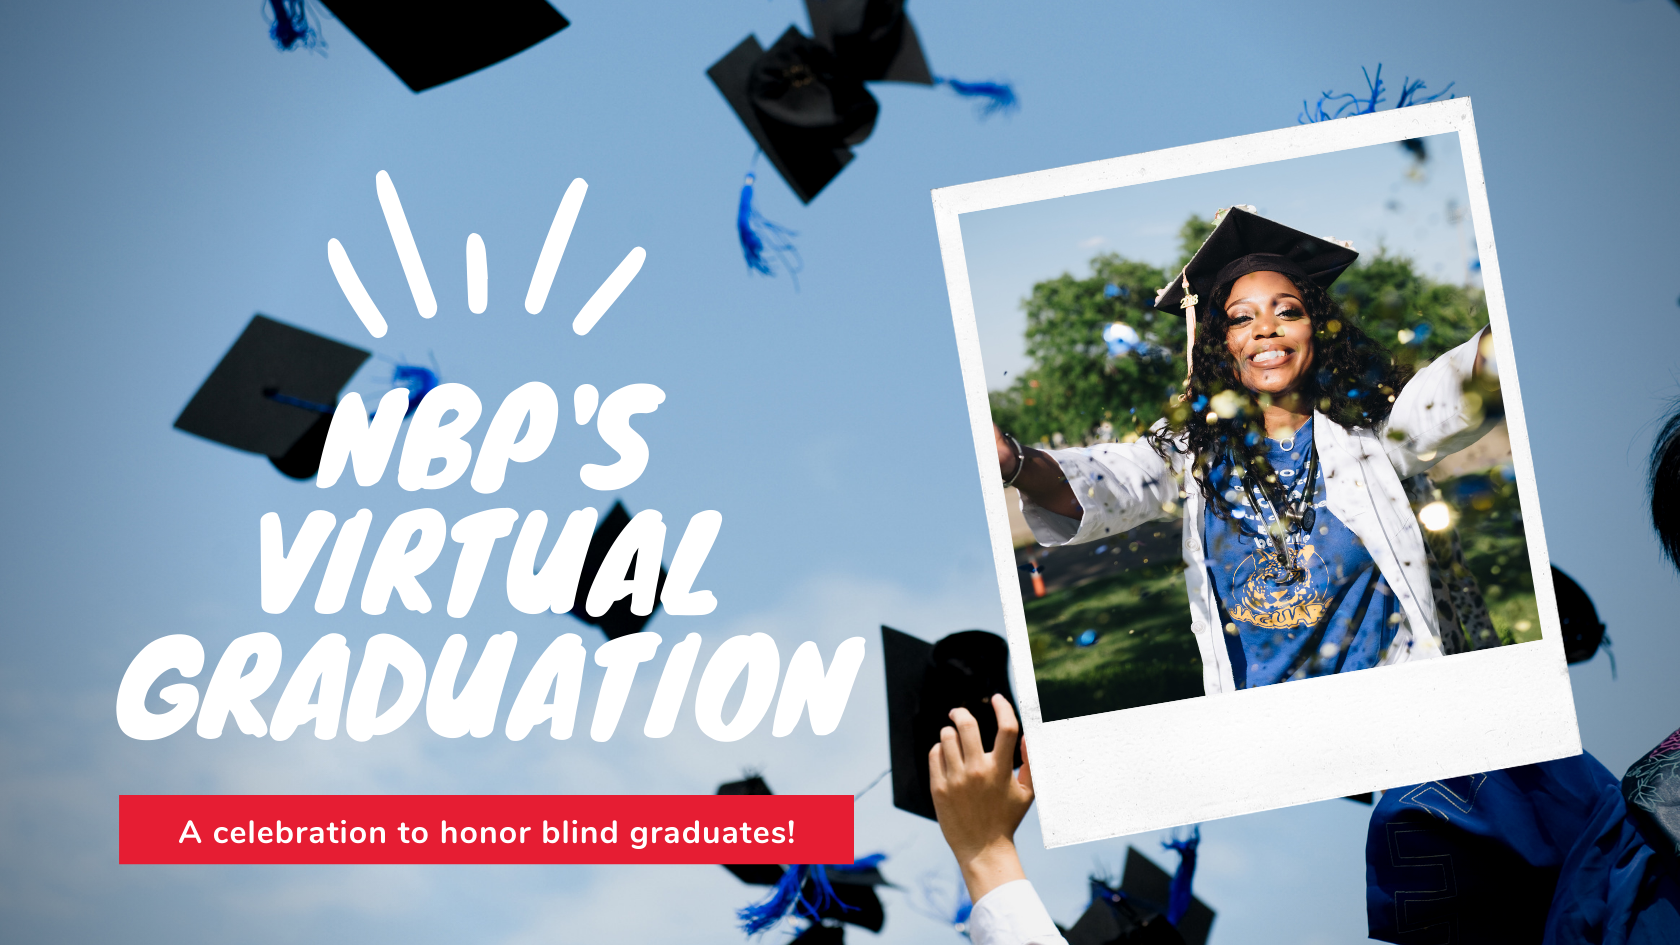 NBP 's Virtual Graduation banner with a photo of a smiling graduate.